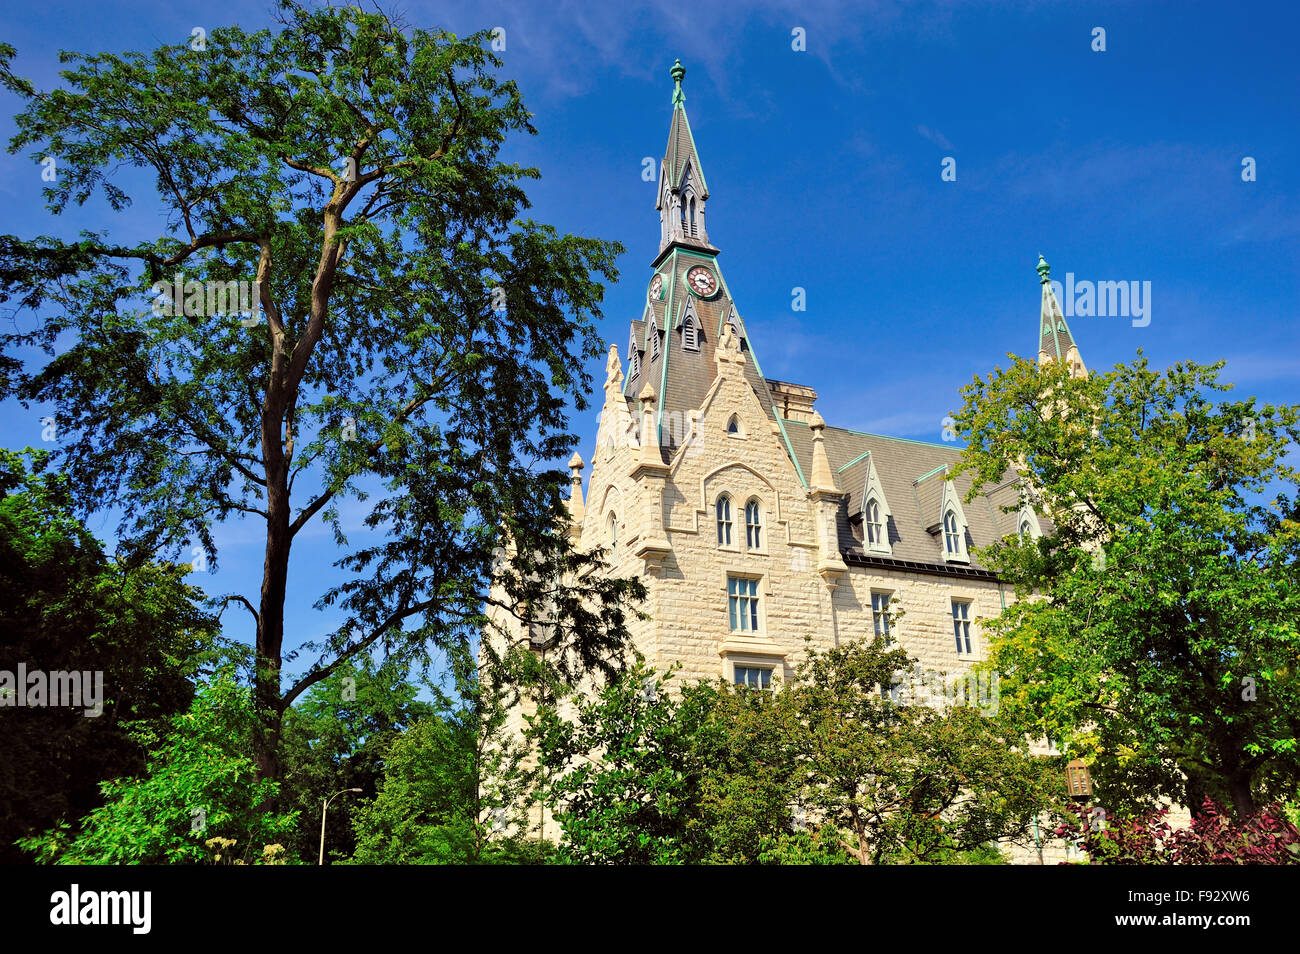 University Hall on the campus of Northwestern University in the Chicago suburb of Evanston, Illinois, USA. - Stock Image